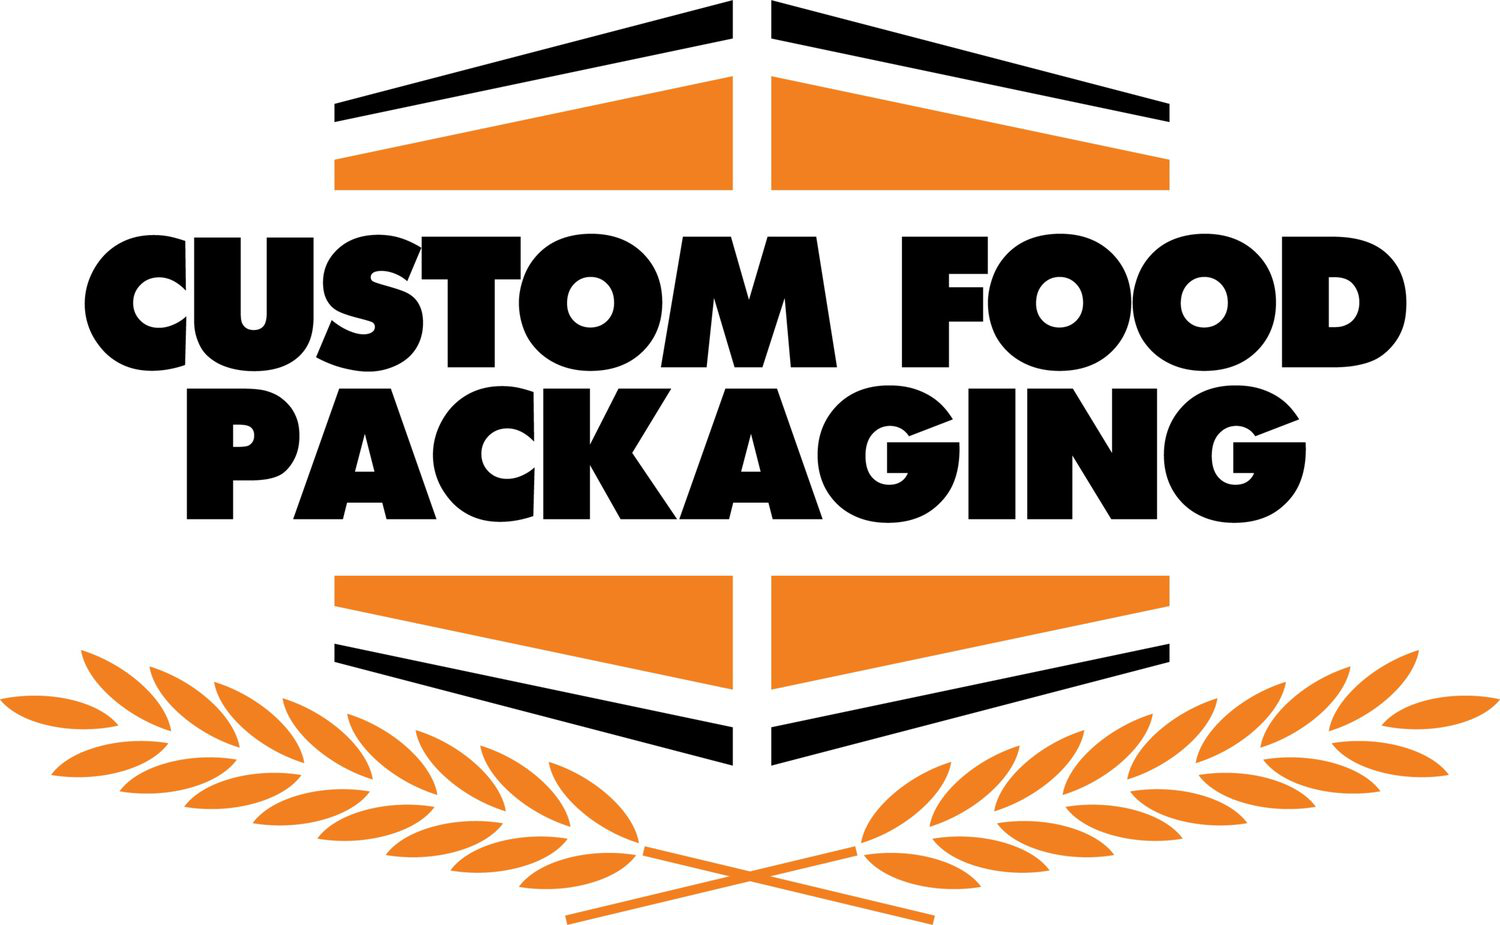 Custom Food Packaging